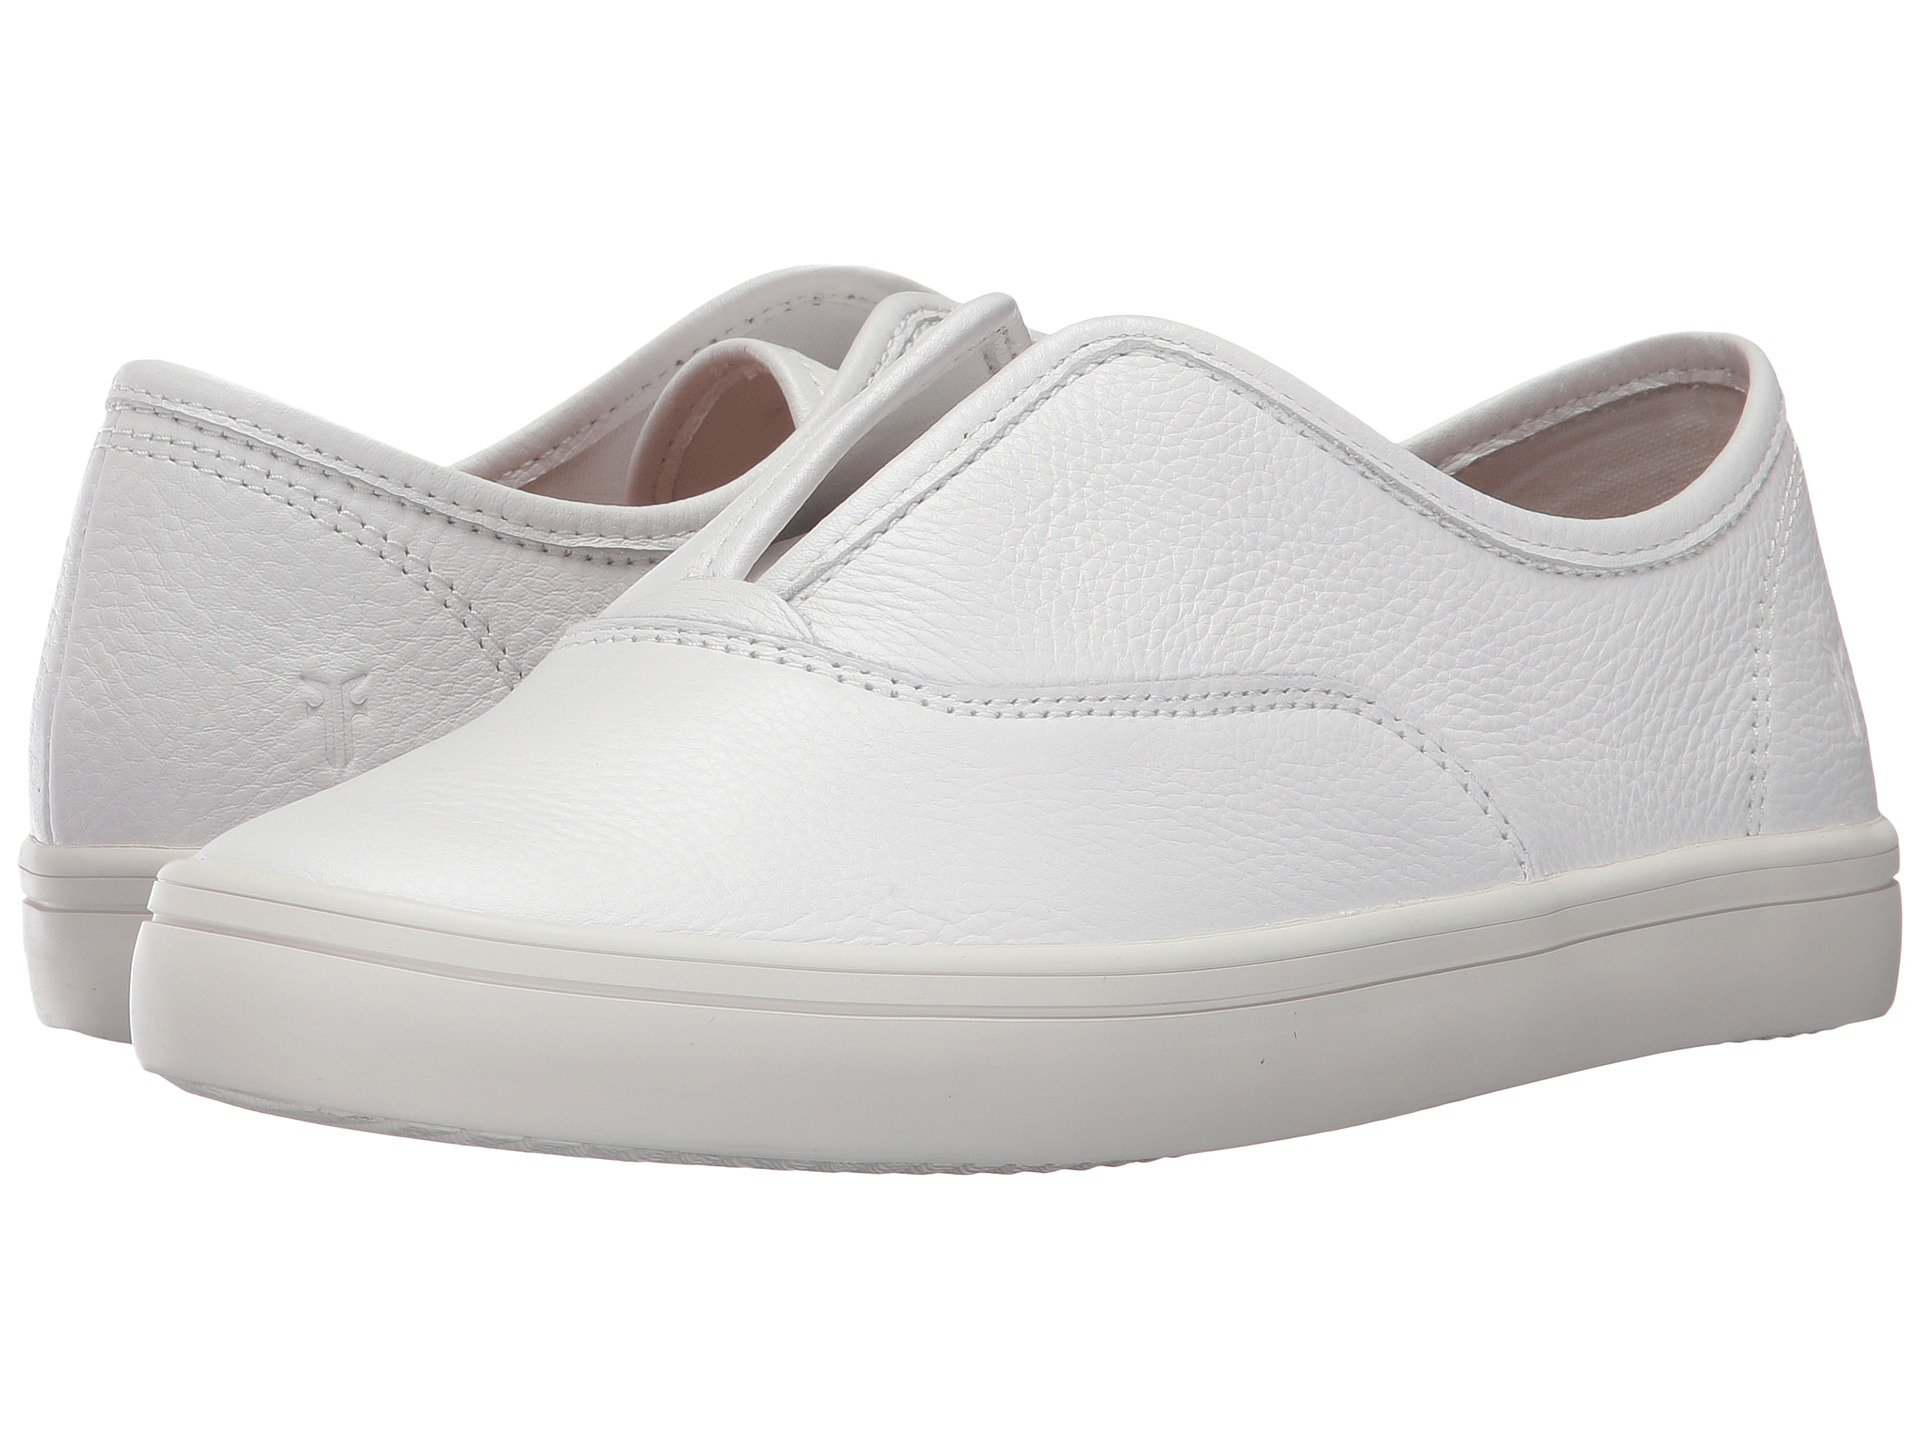 Women'S Maya Leather Slip-On Sneakers in White Leather